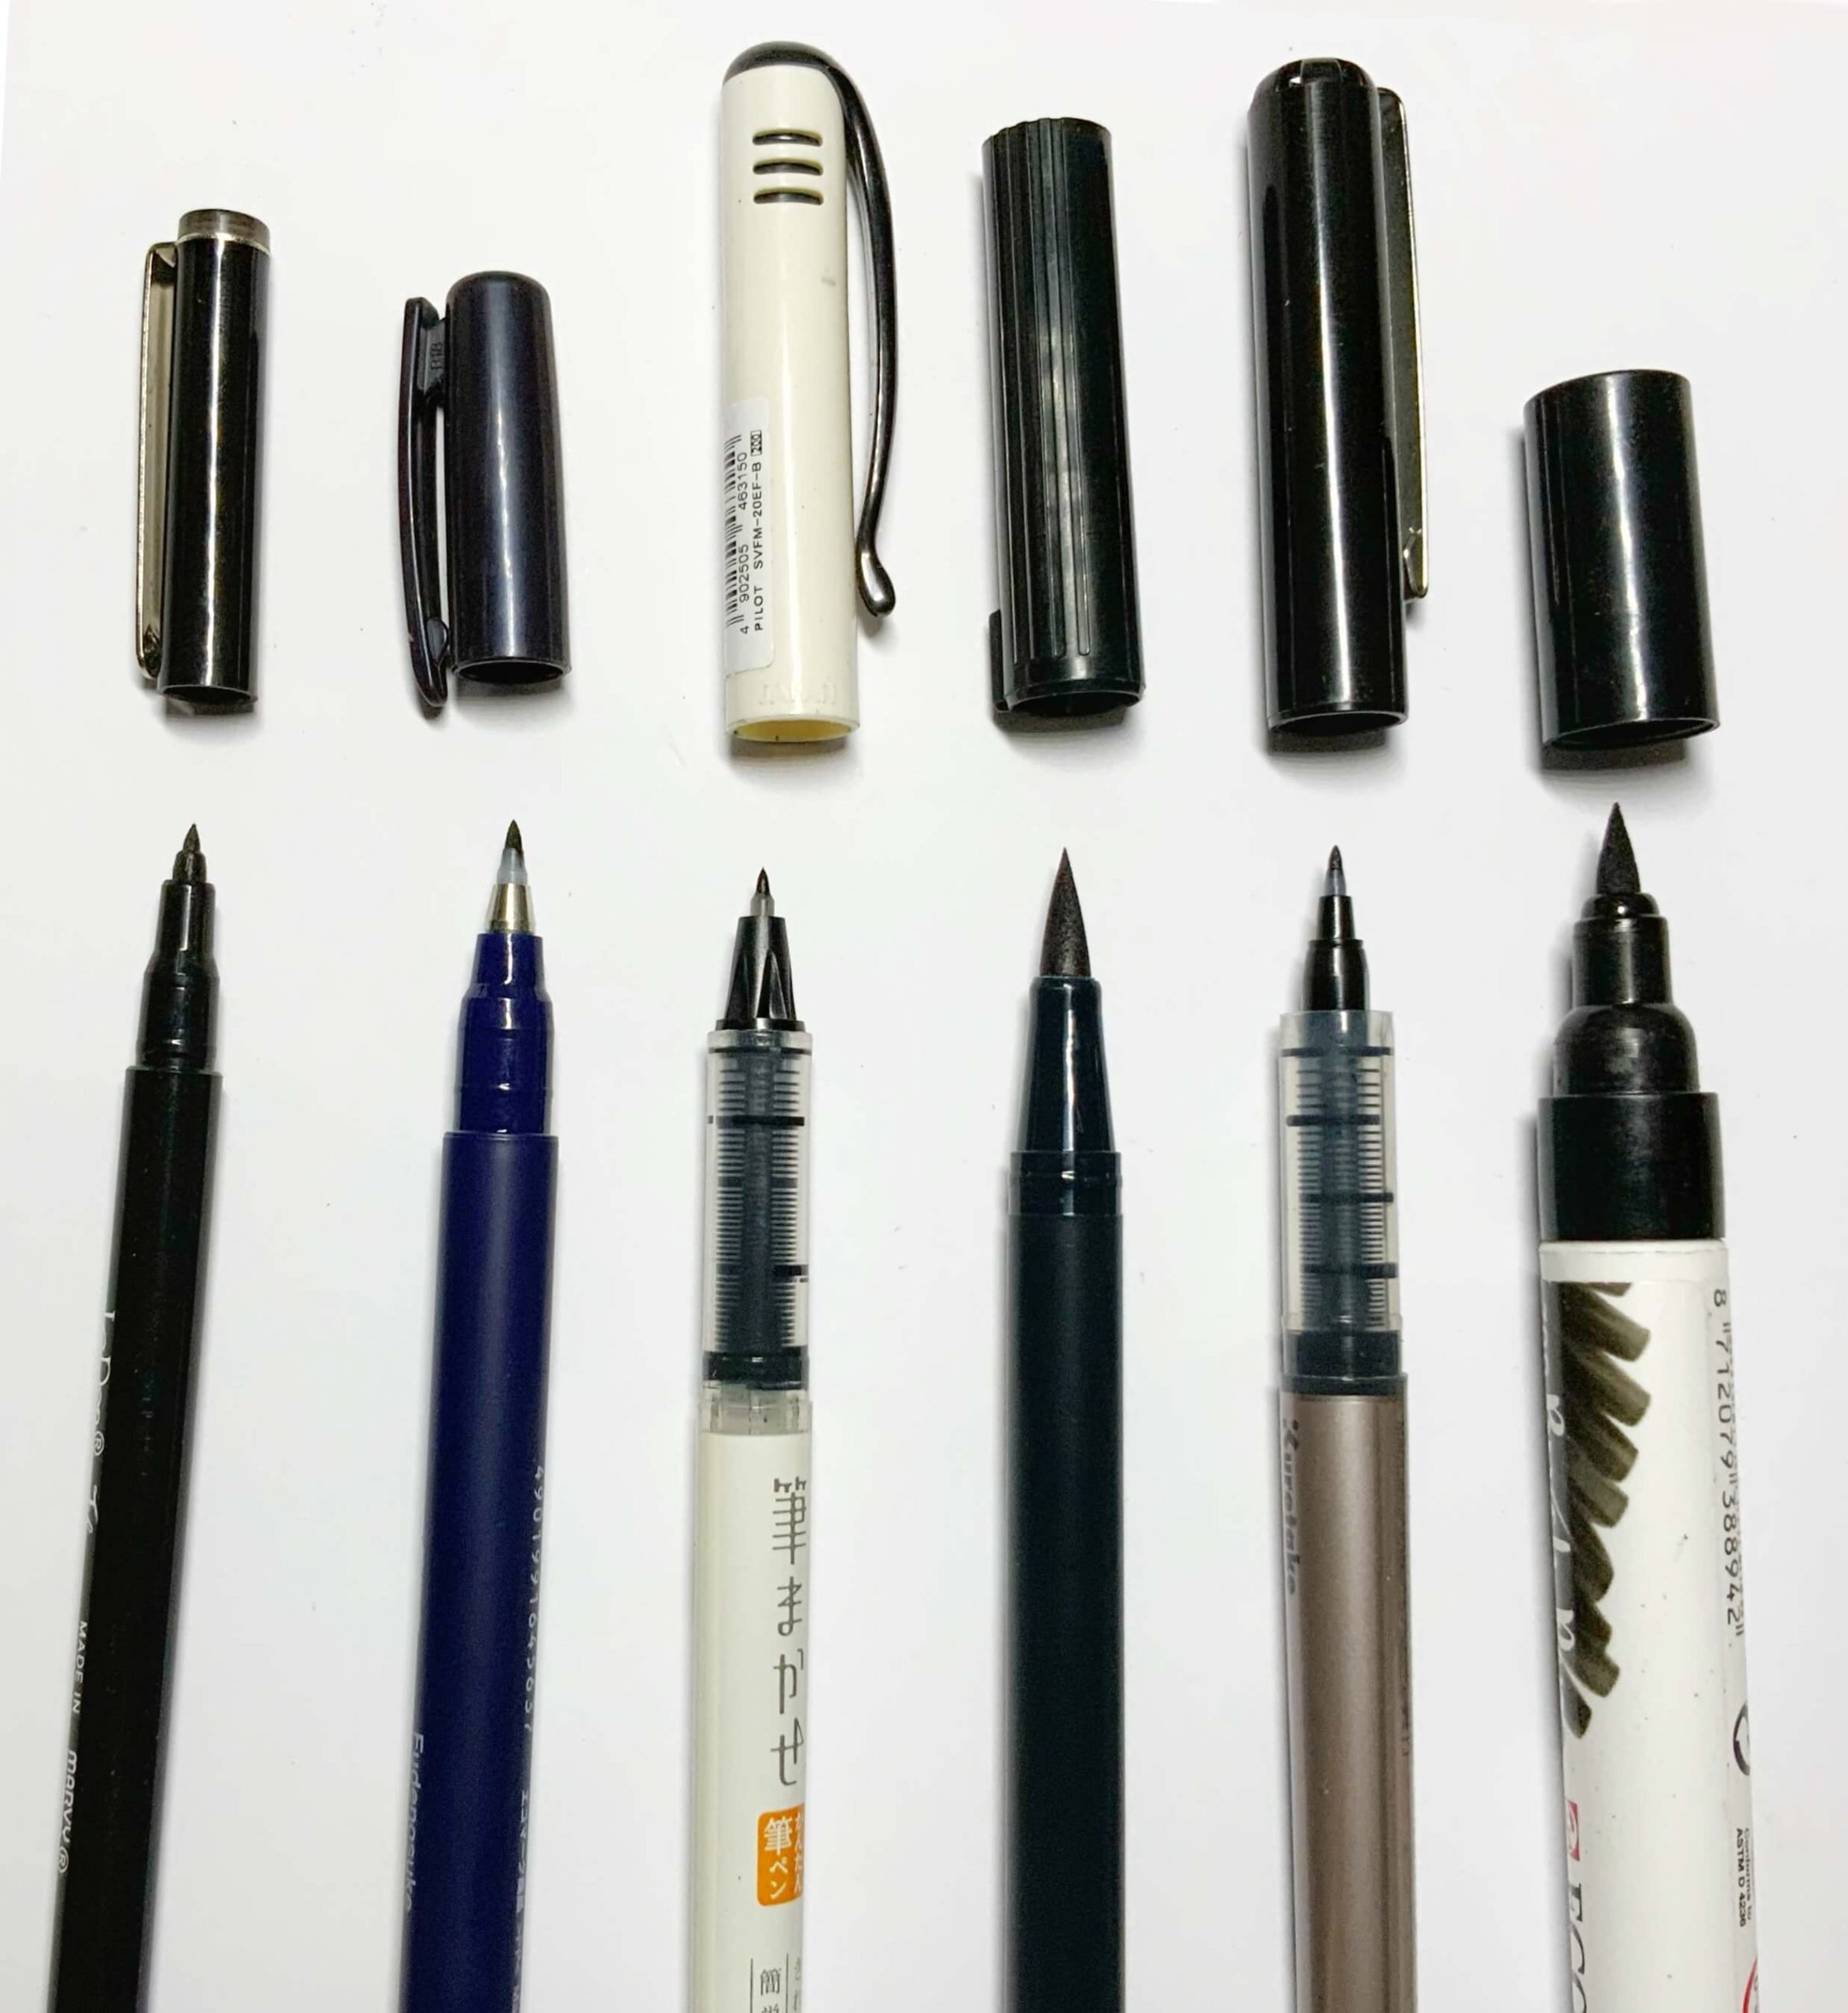 Different Brush Pens for calligraphy and lettering, comparing nib sizes